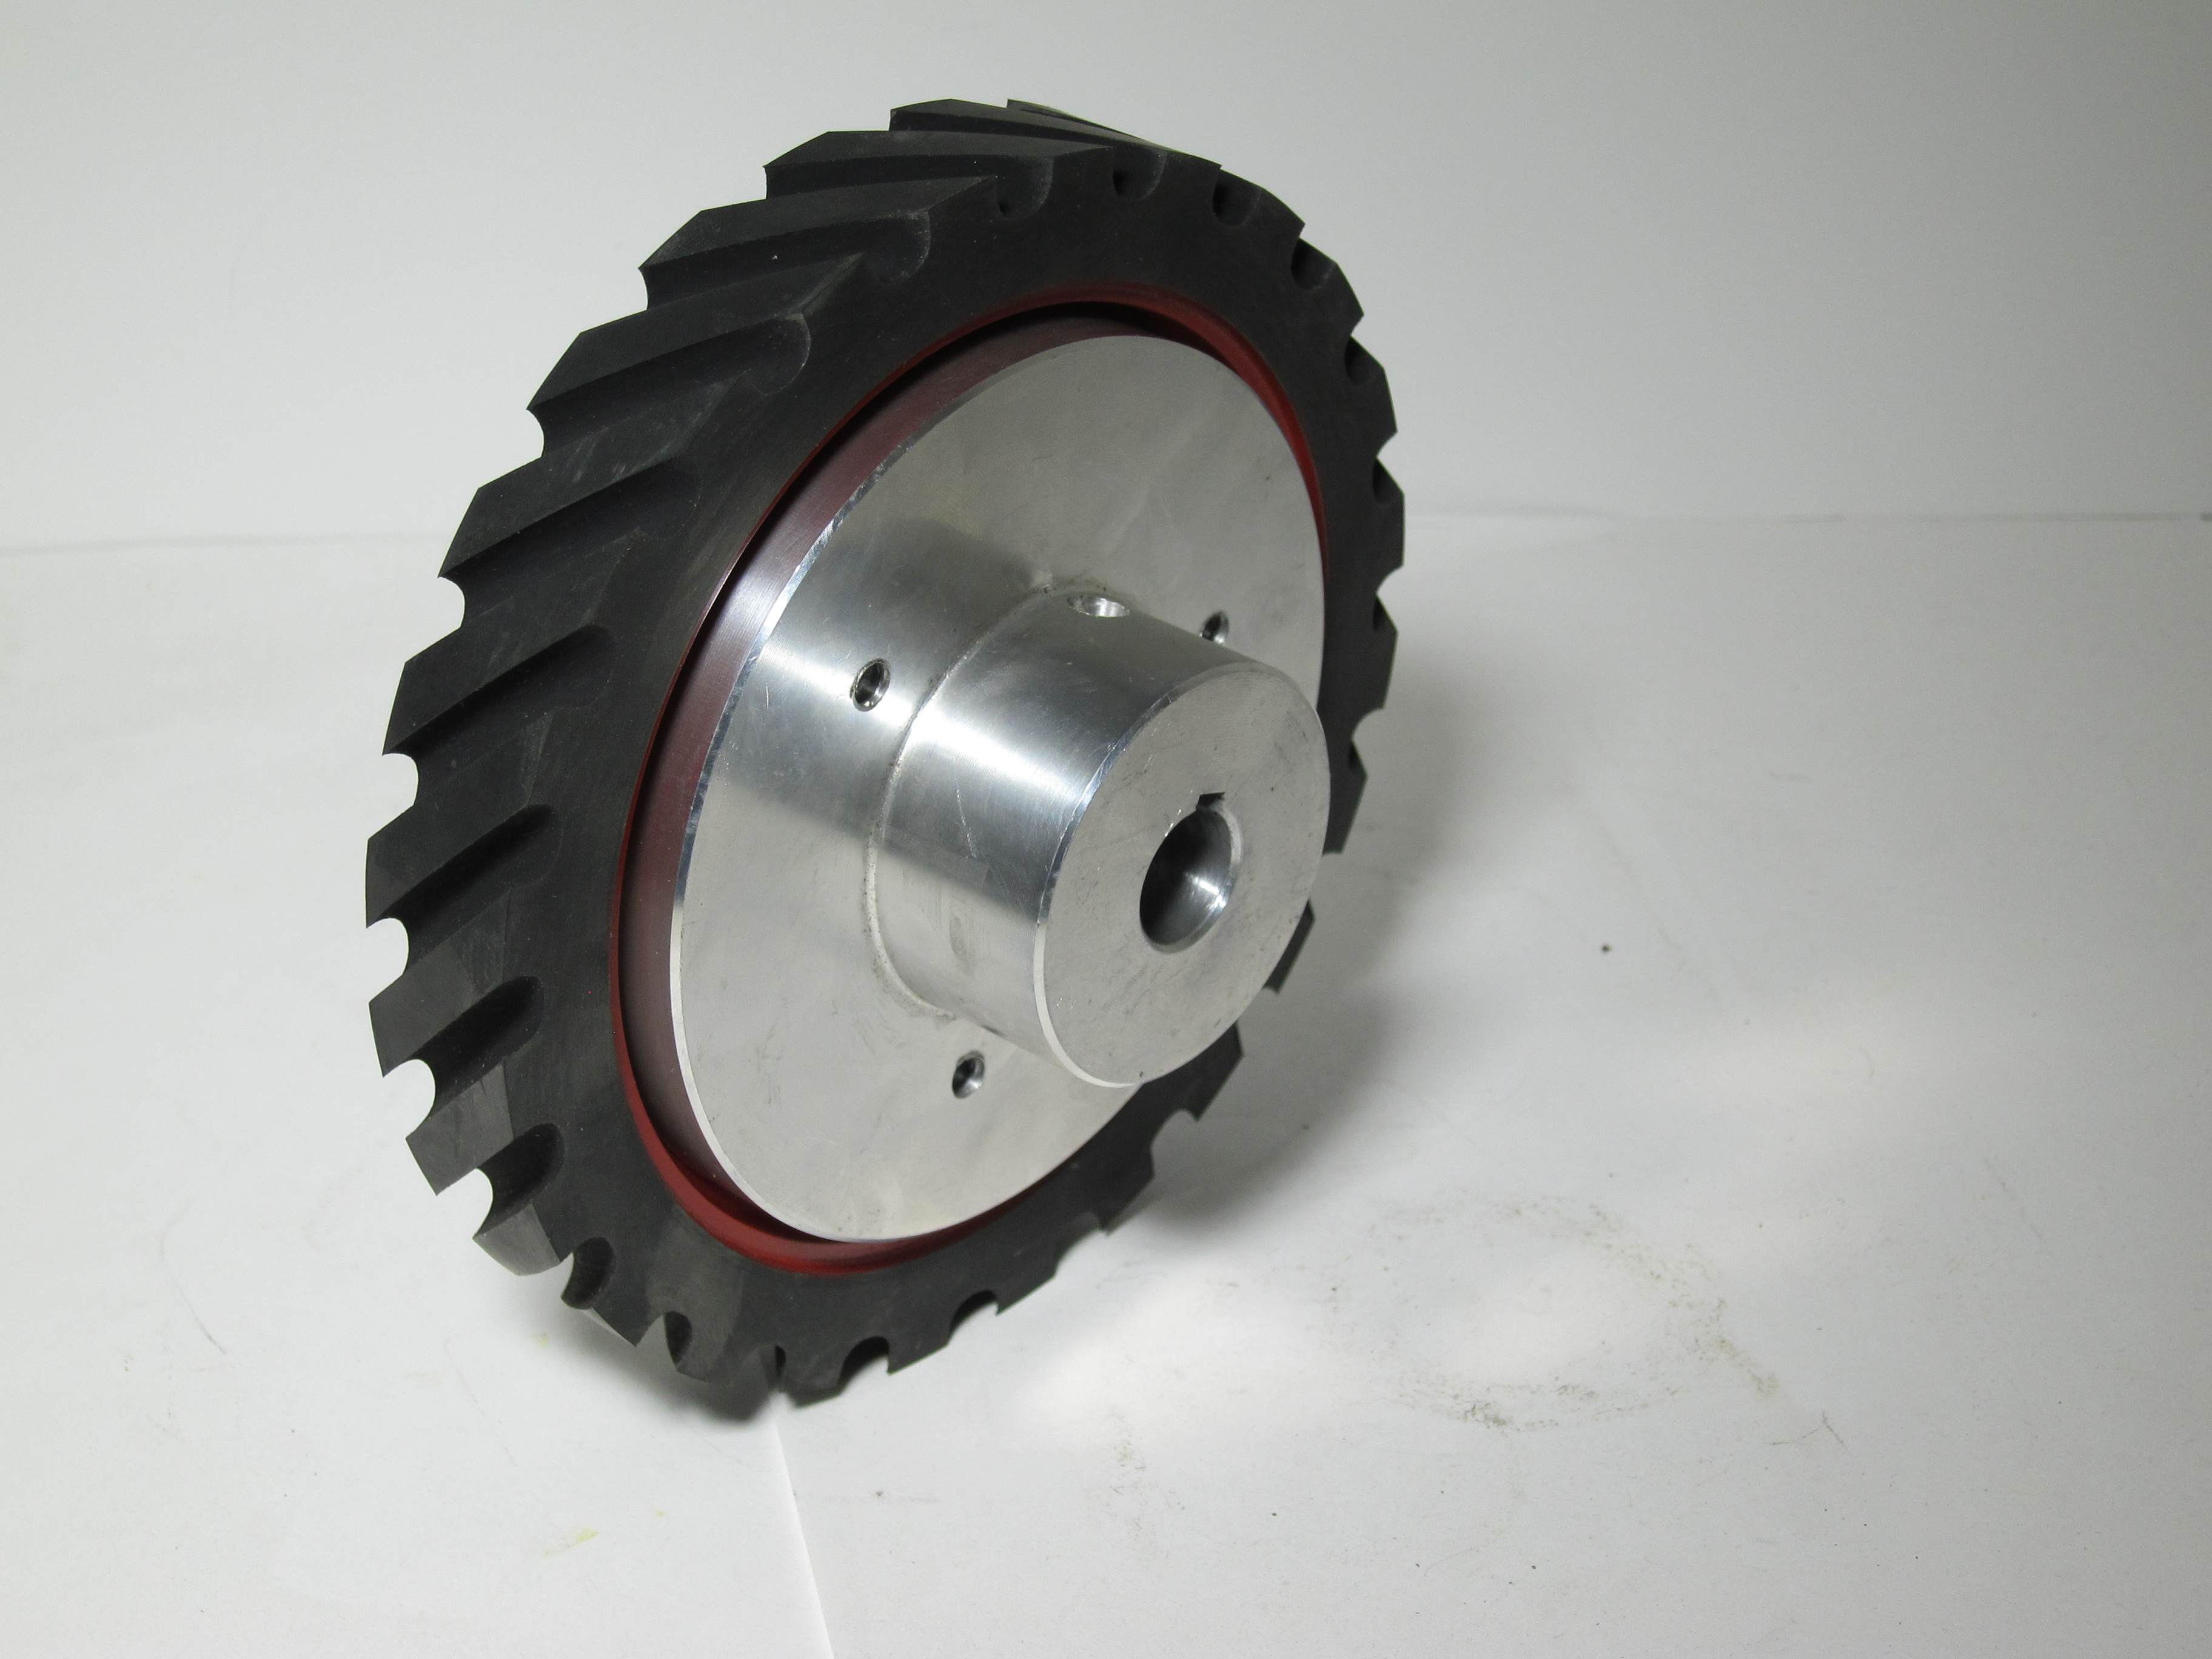 936-034 BG142 1 x 42 inch kalamazoo contact wheel, contact wheel, kalamazoo contact wheel, belt grinding, grinding